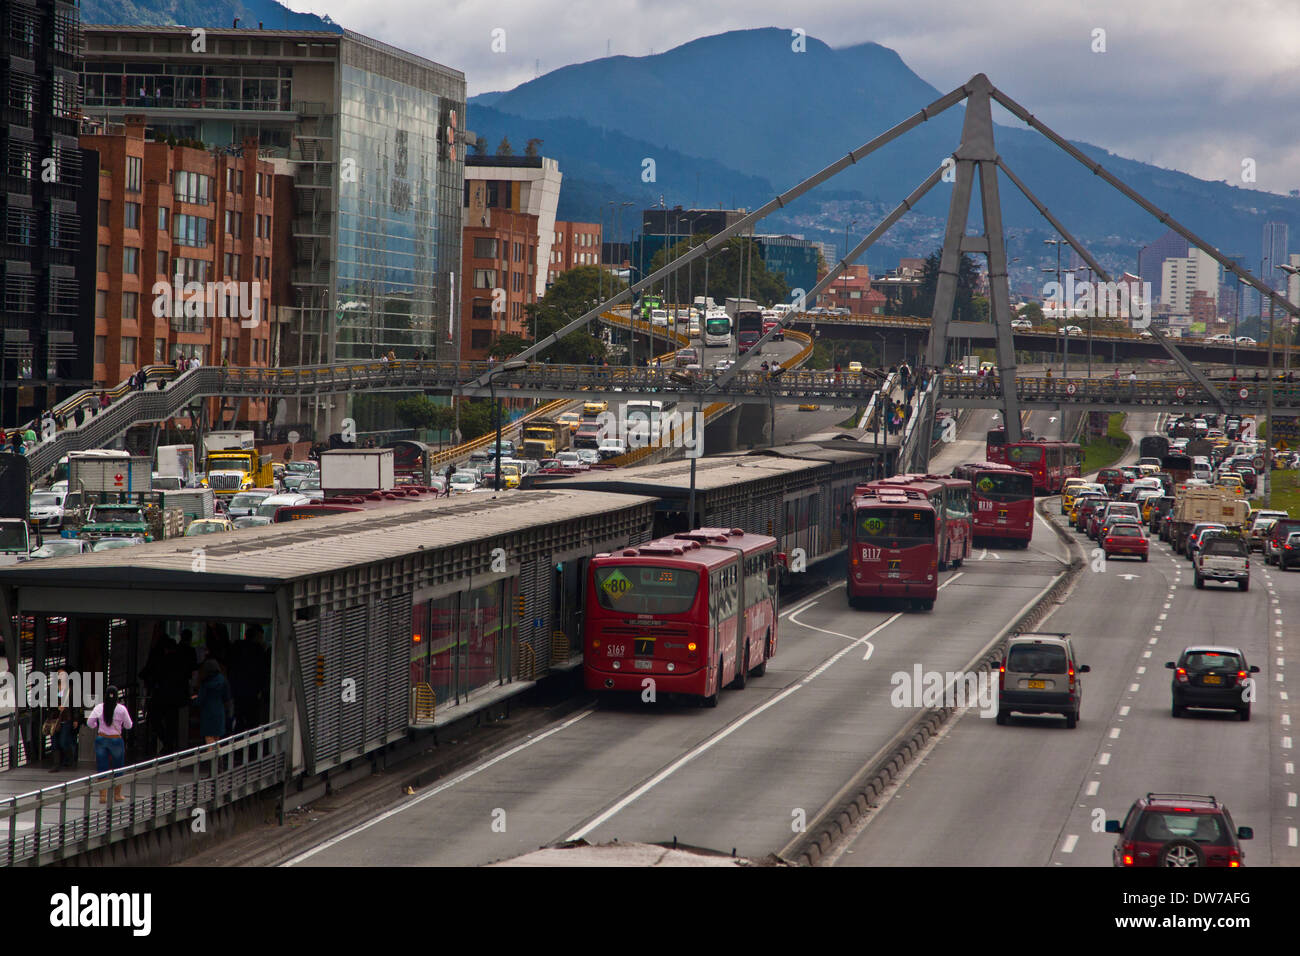 North Bogota, Colombia 100th st transmilenio station afternoon traffic - Stock Image